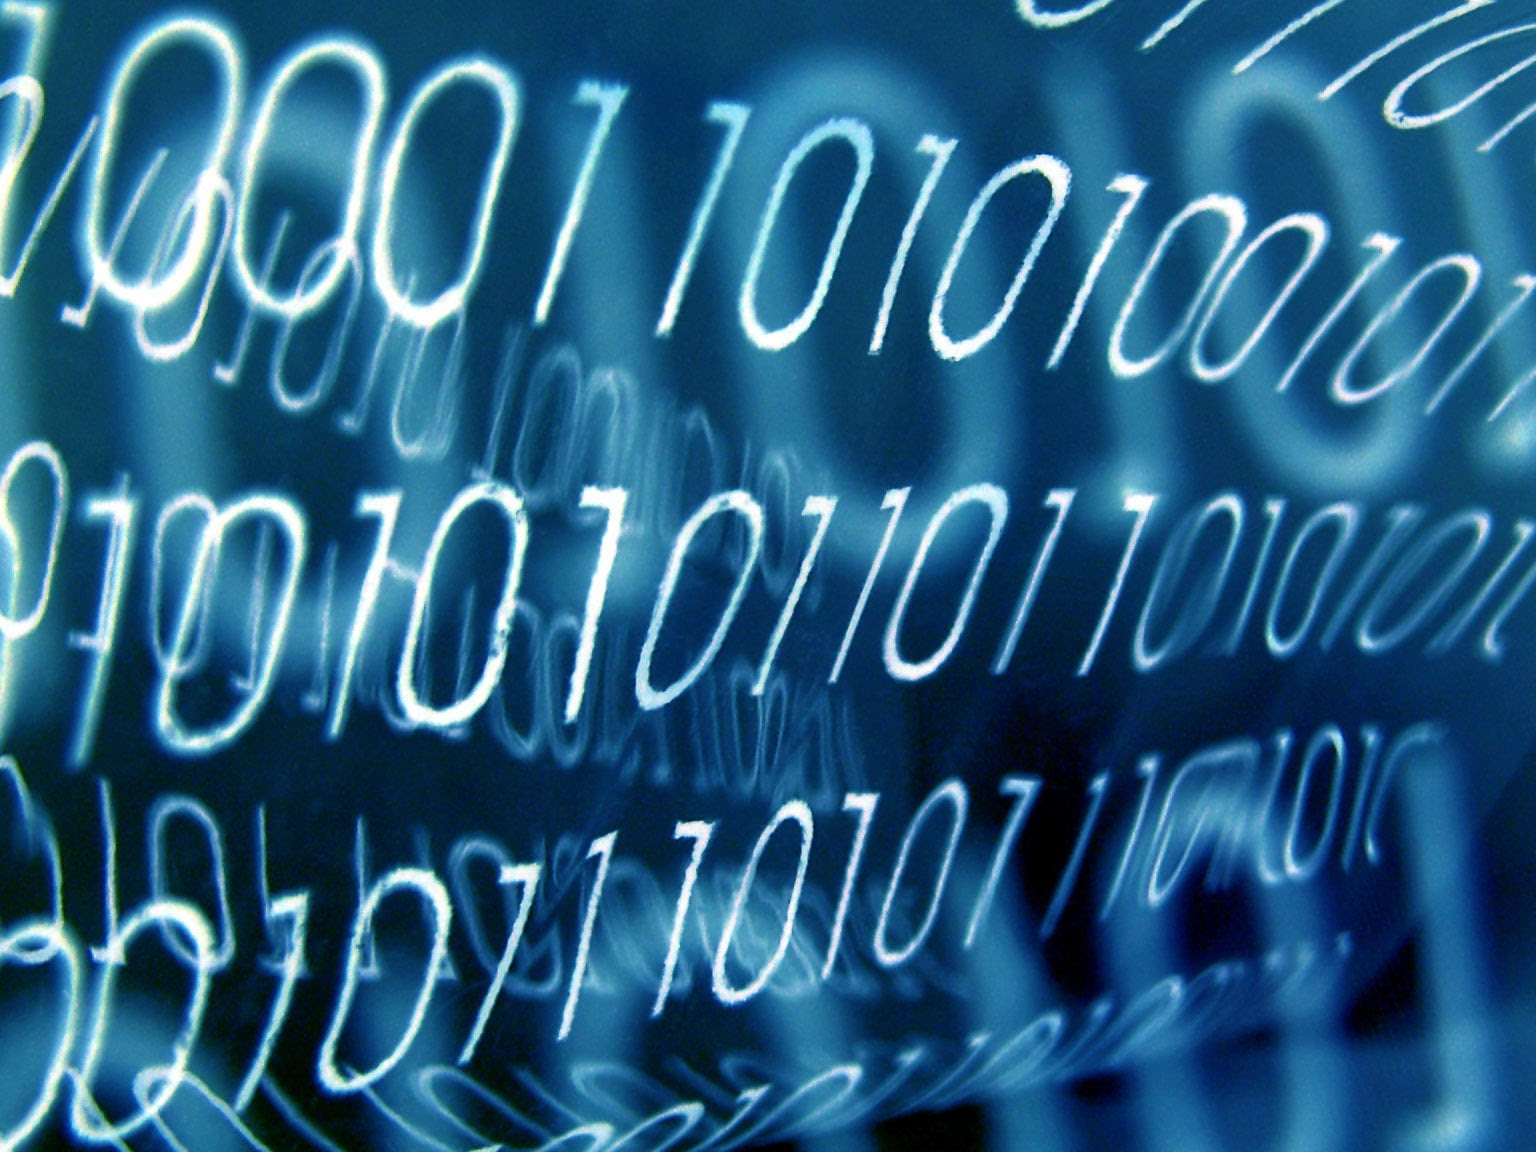 Big data: The next frontier for innovation, competition and productivity